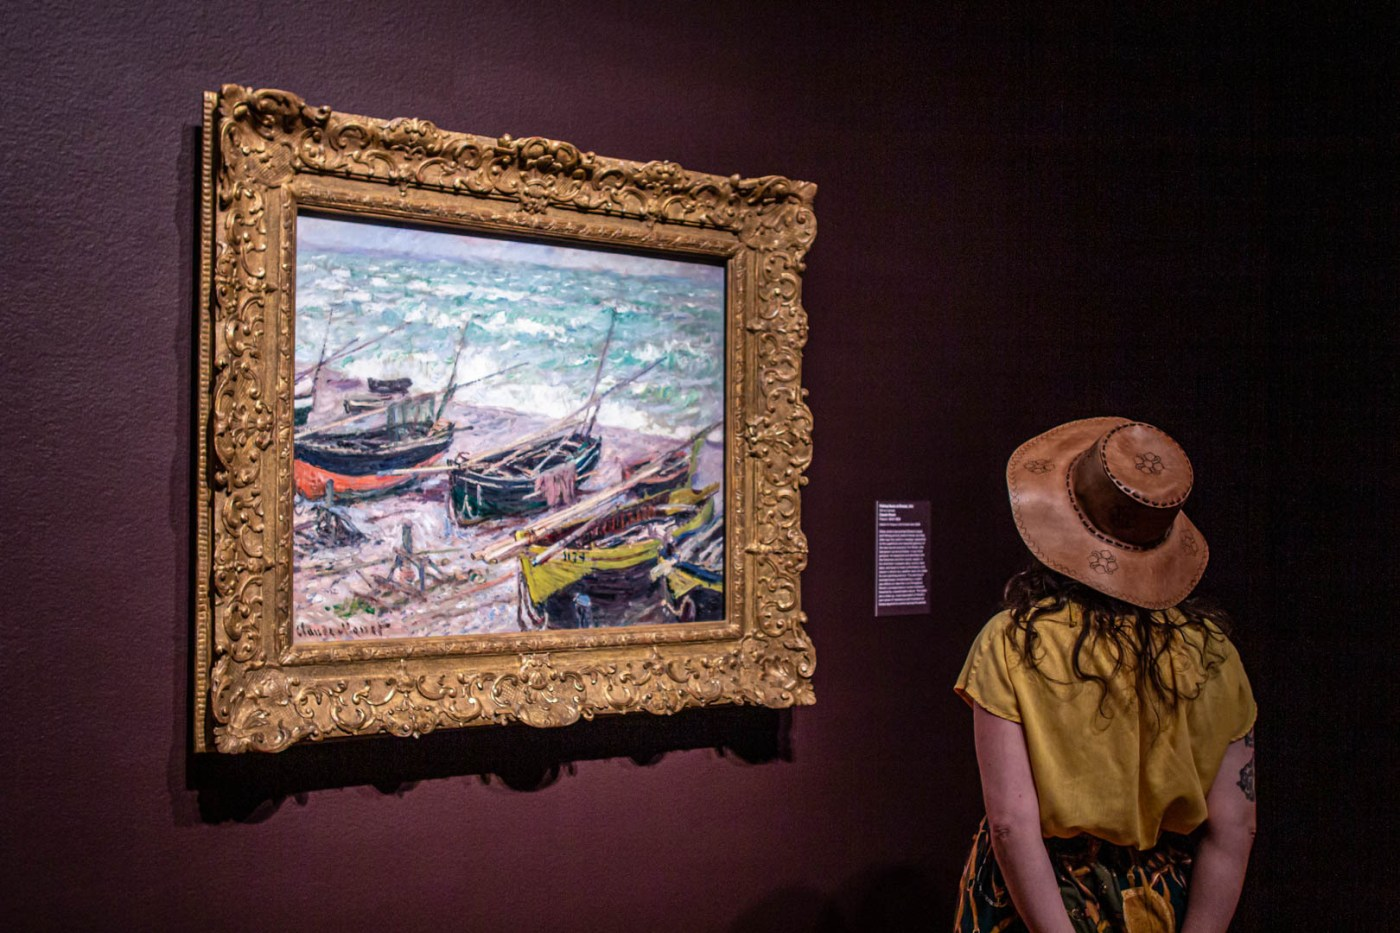 Image of a person looking at a Monet painting of fishing boats on a shore